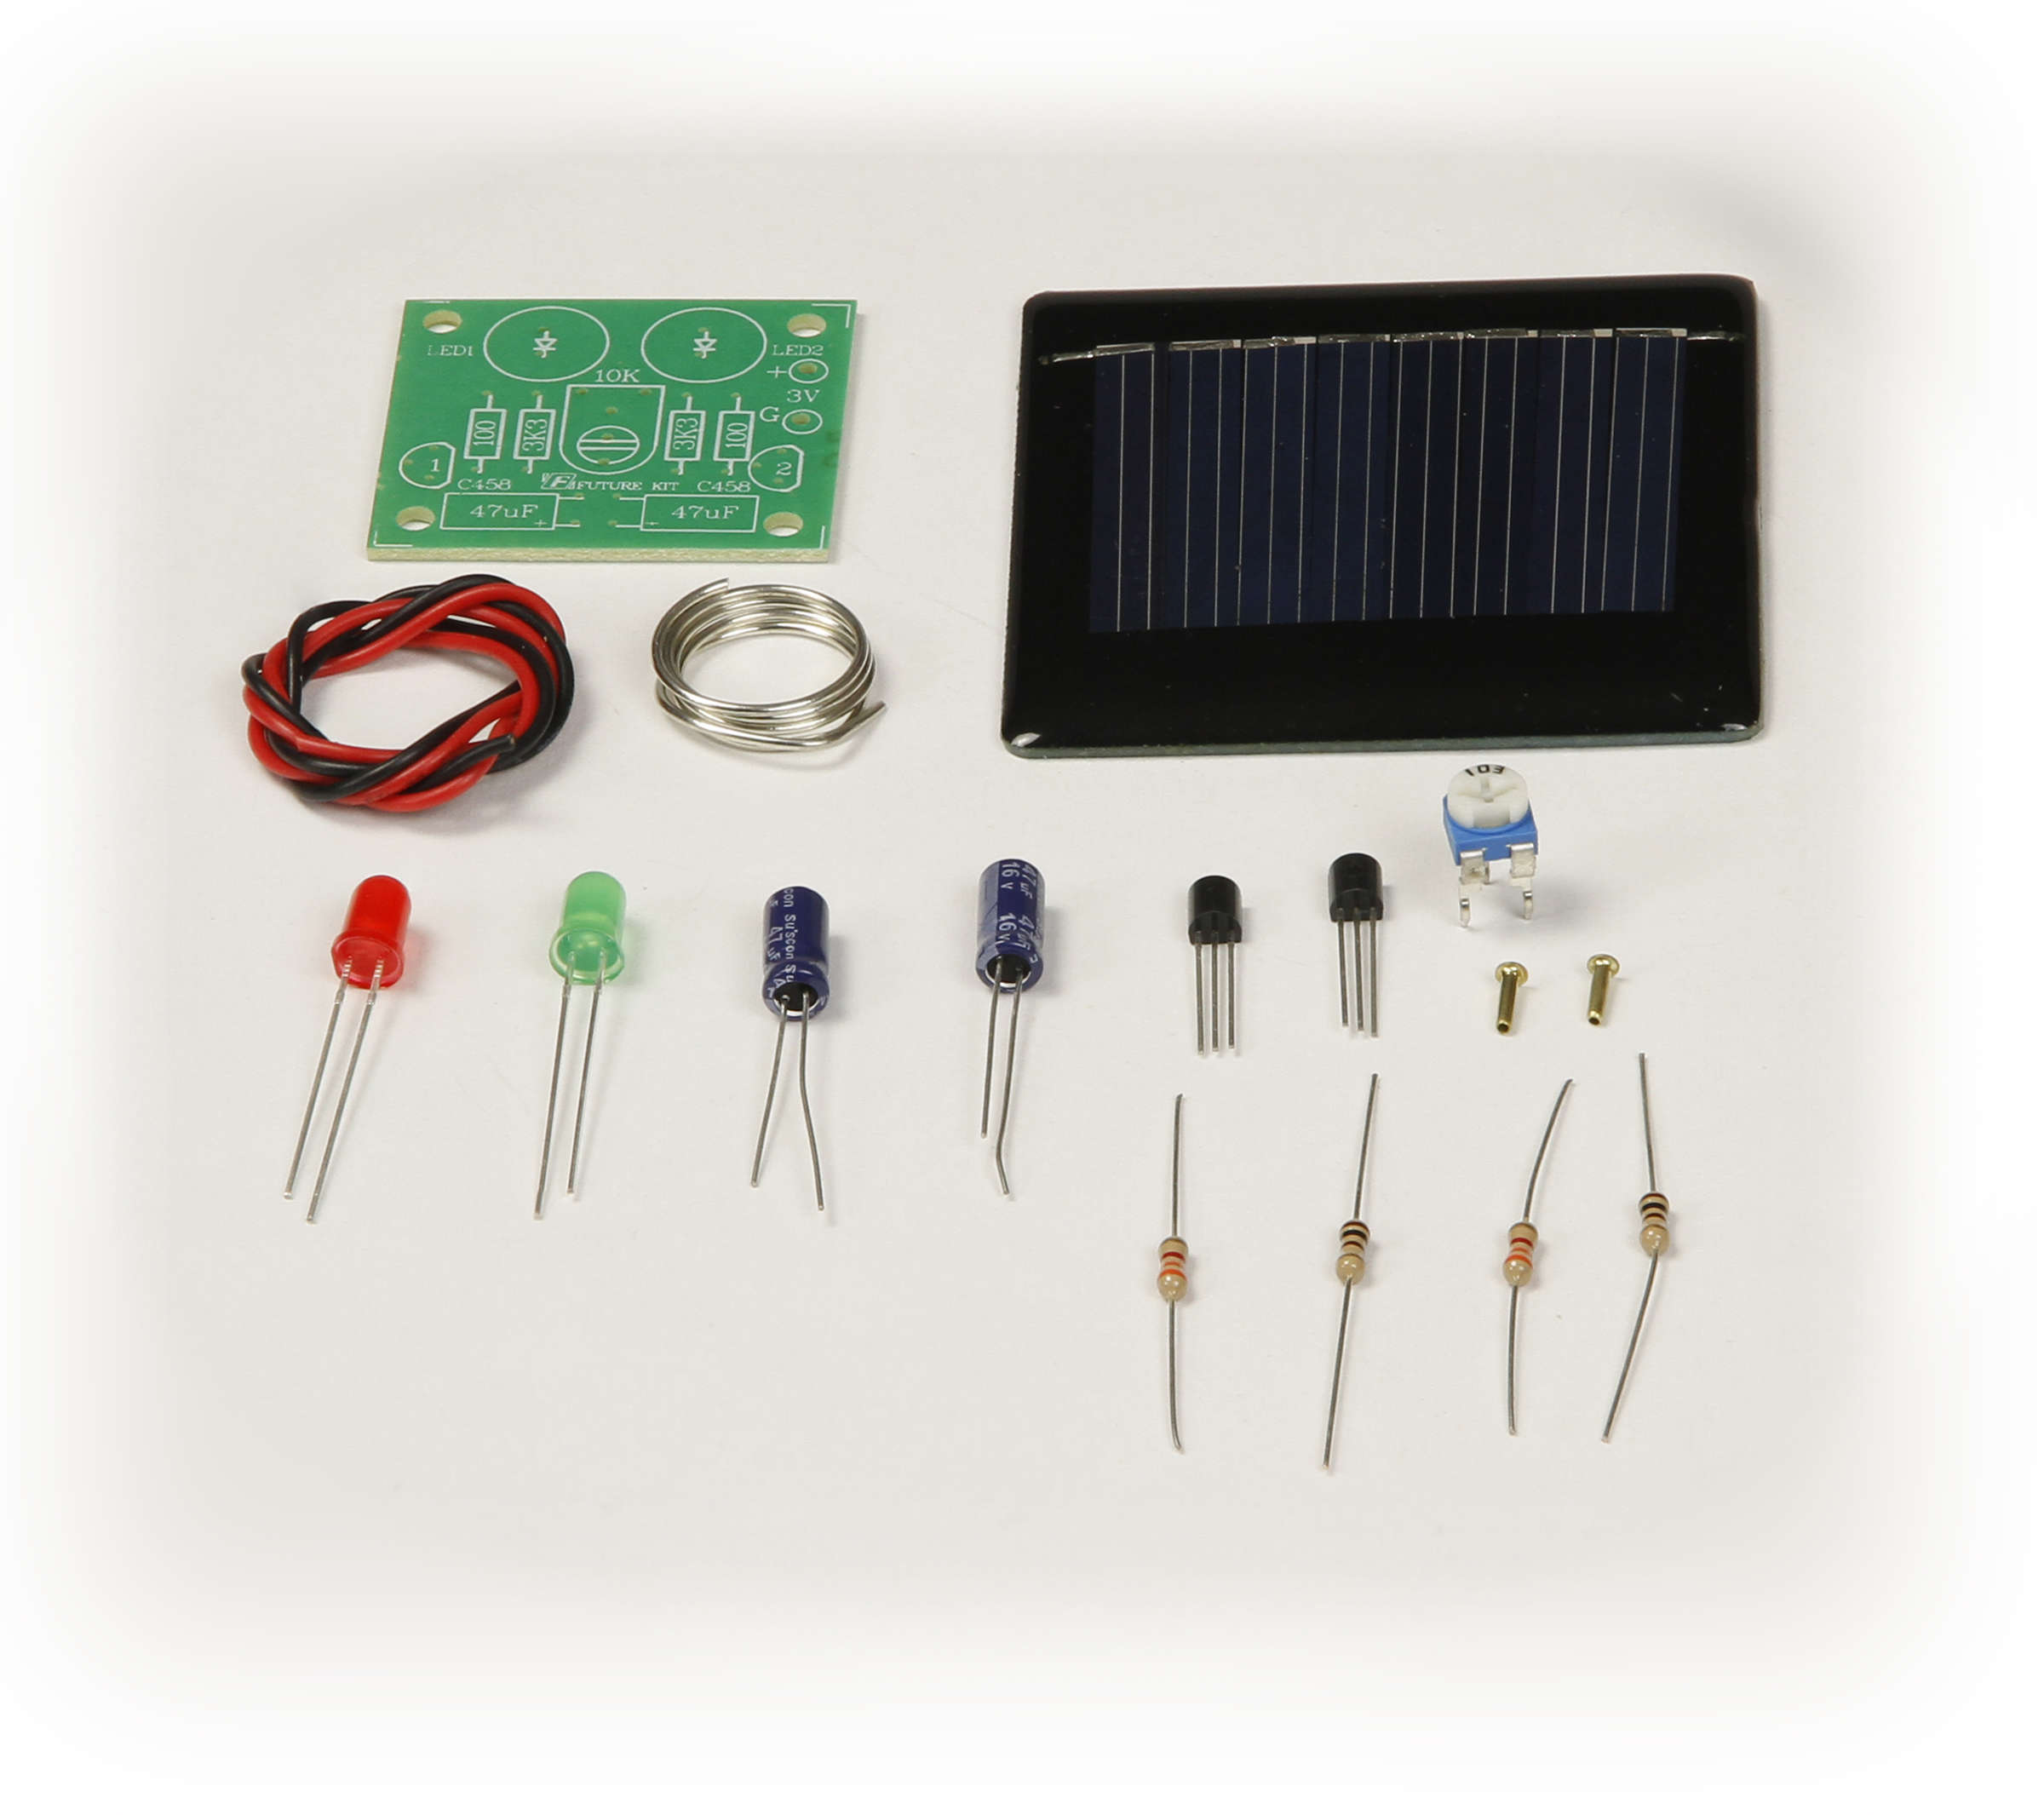 Global Specialties GSK-1005 Solar LED Blinking Light Kit Photo